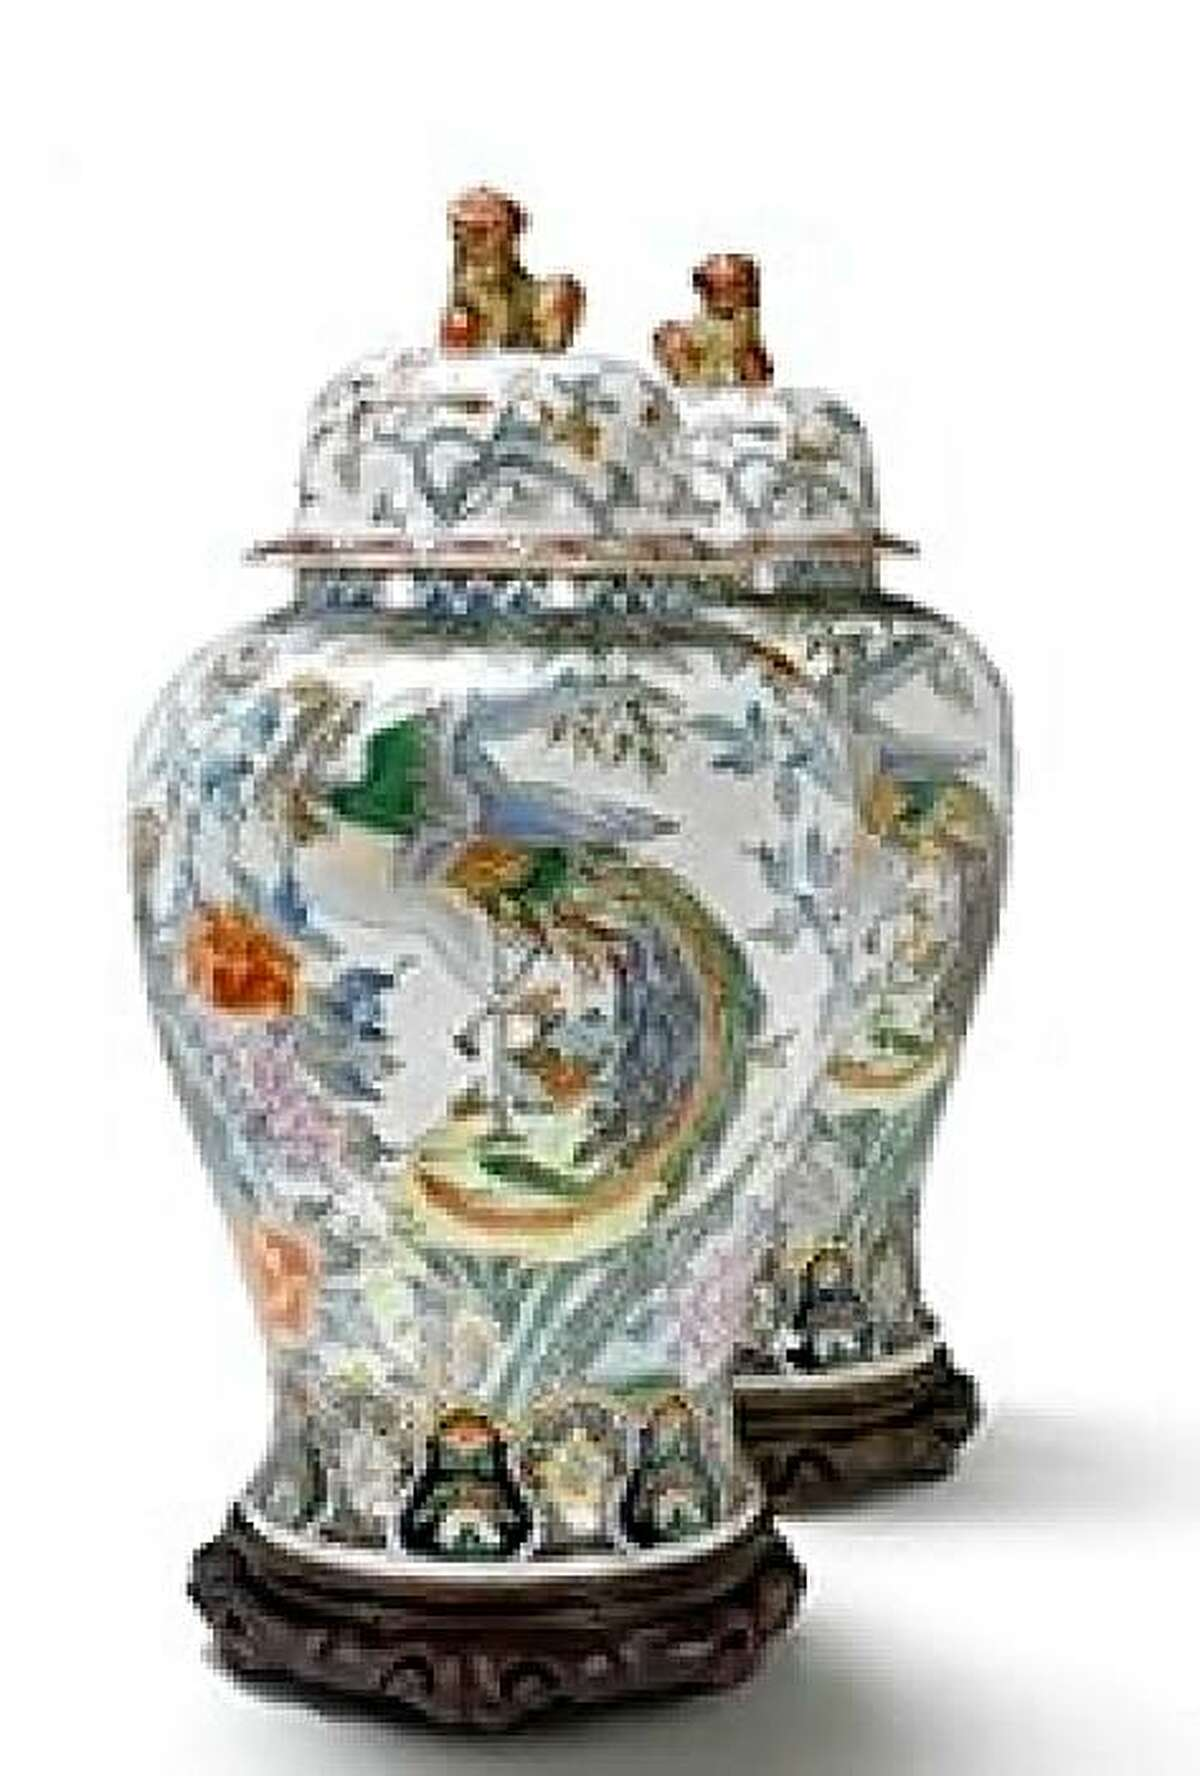 From the estate of Jessica McClintock, a pair of Chinese ginger jars, estimated at $600 to $800 in value, up for auction on Oct. 18, 2009 at Butterfields & Bonhams in San Francisco.